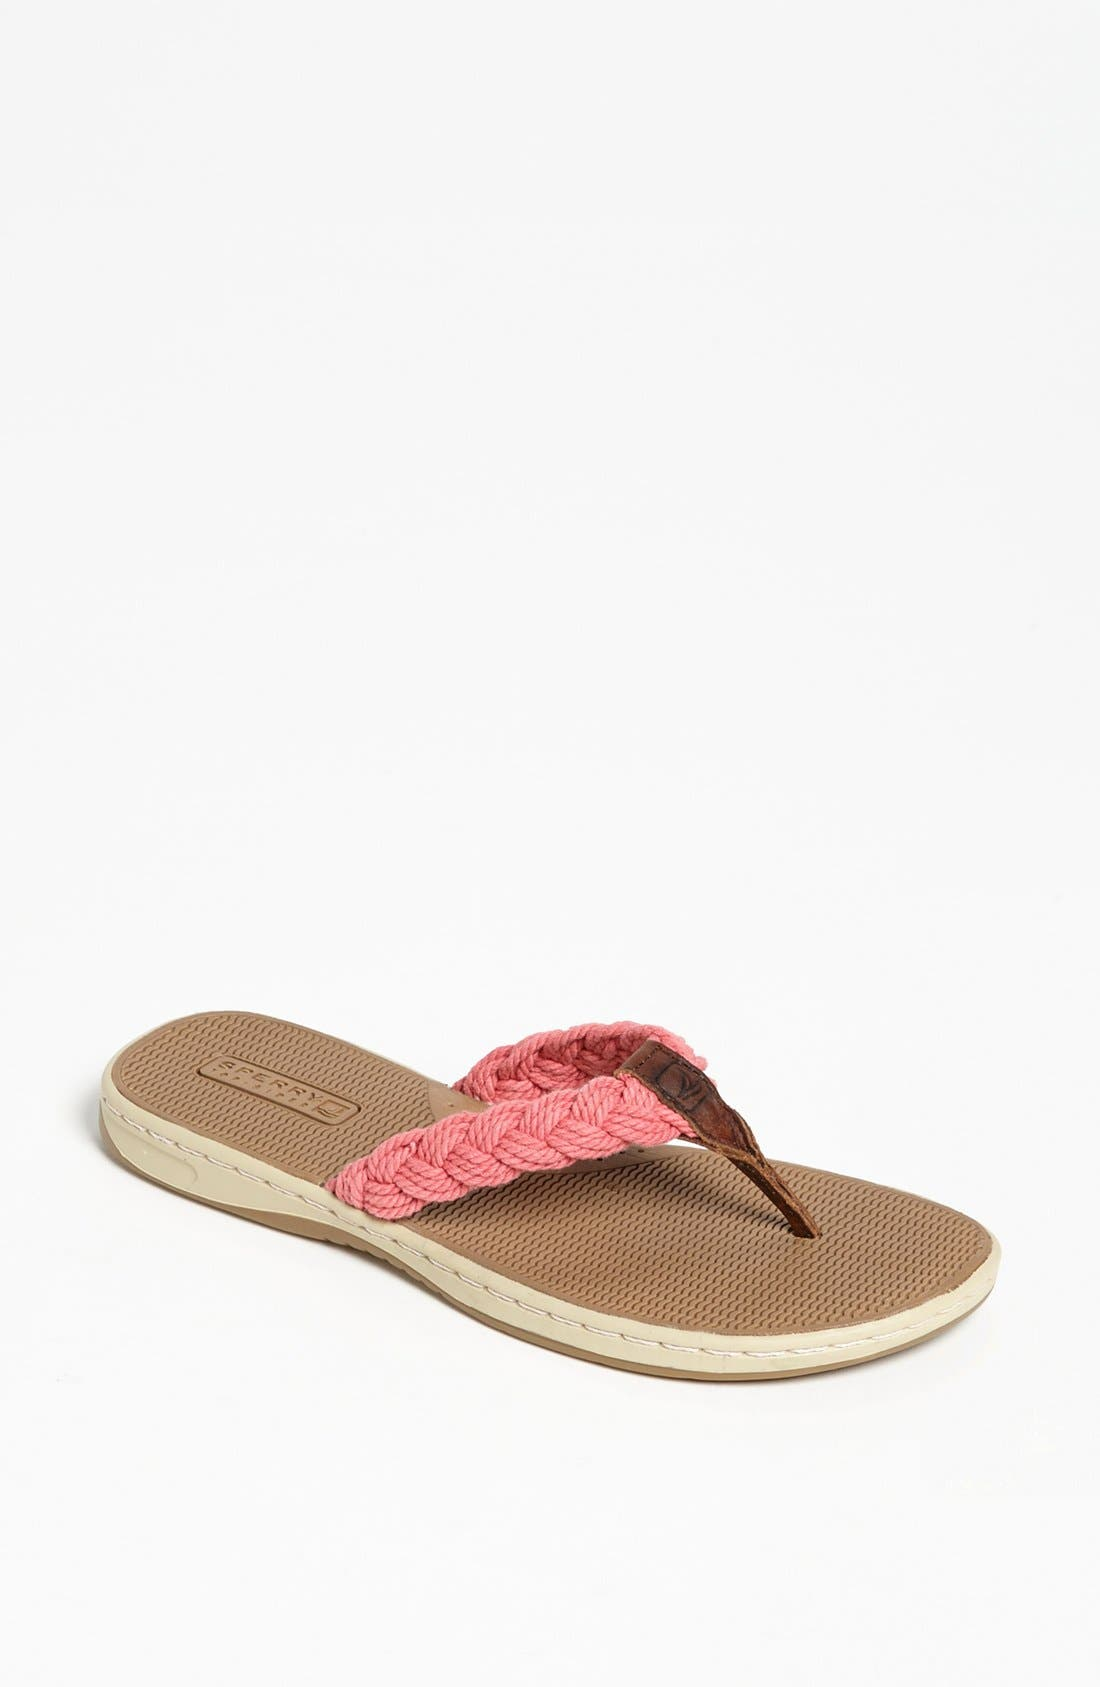 Main Image - SPERRY TOP-SIDER TUCKERFISH FLIP FLOP